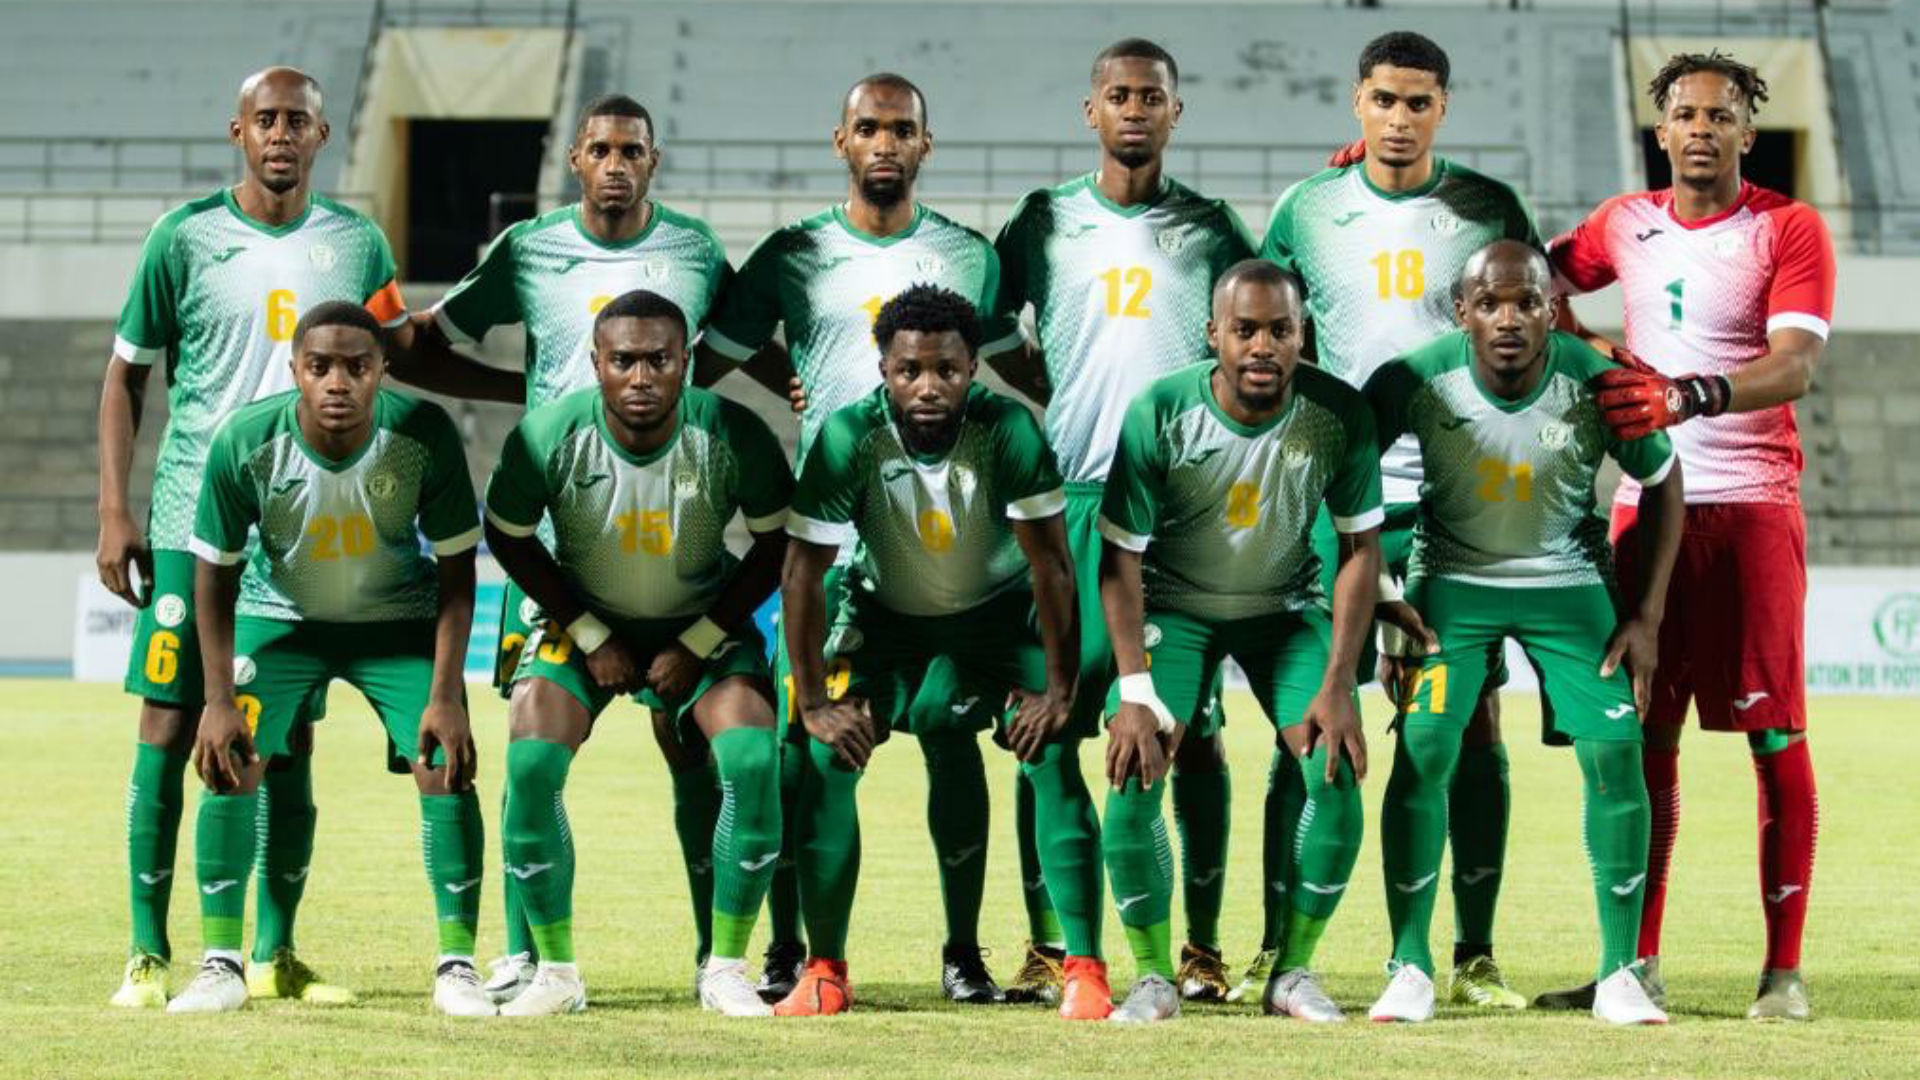 Comoros will give everything to qualify' – coach Abdou on Africa Cup of  Nations ambition | Goal.com